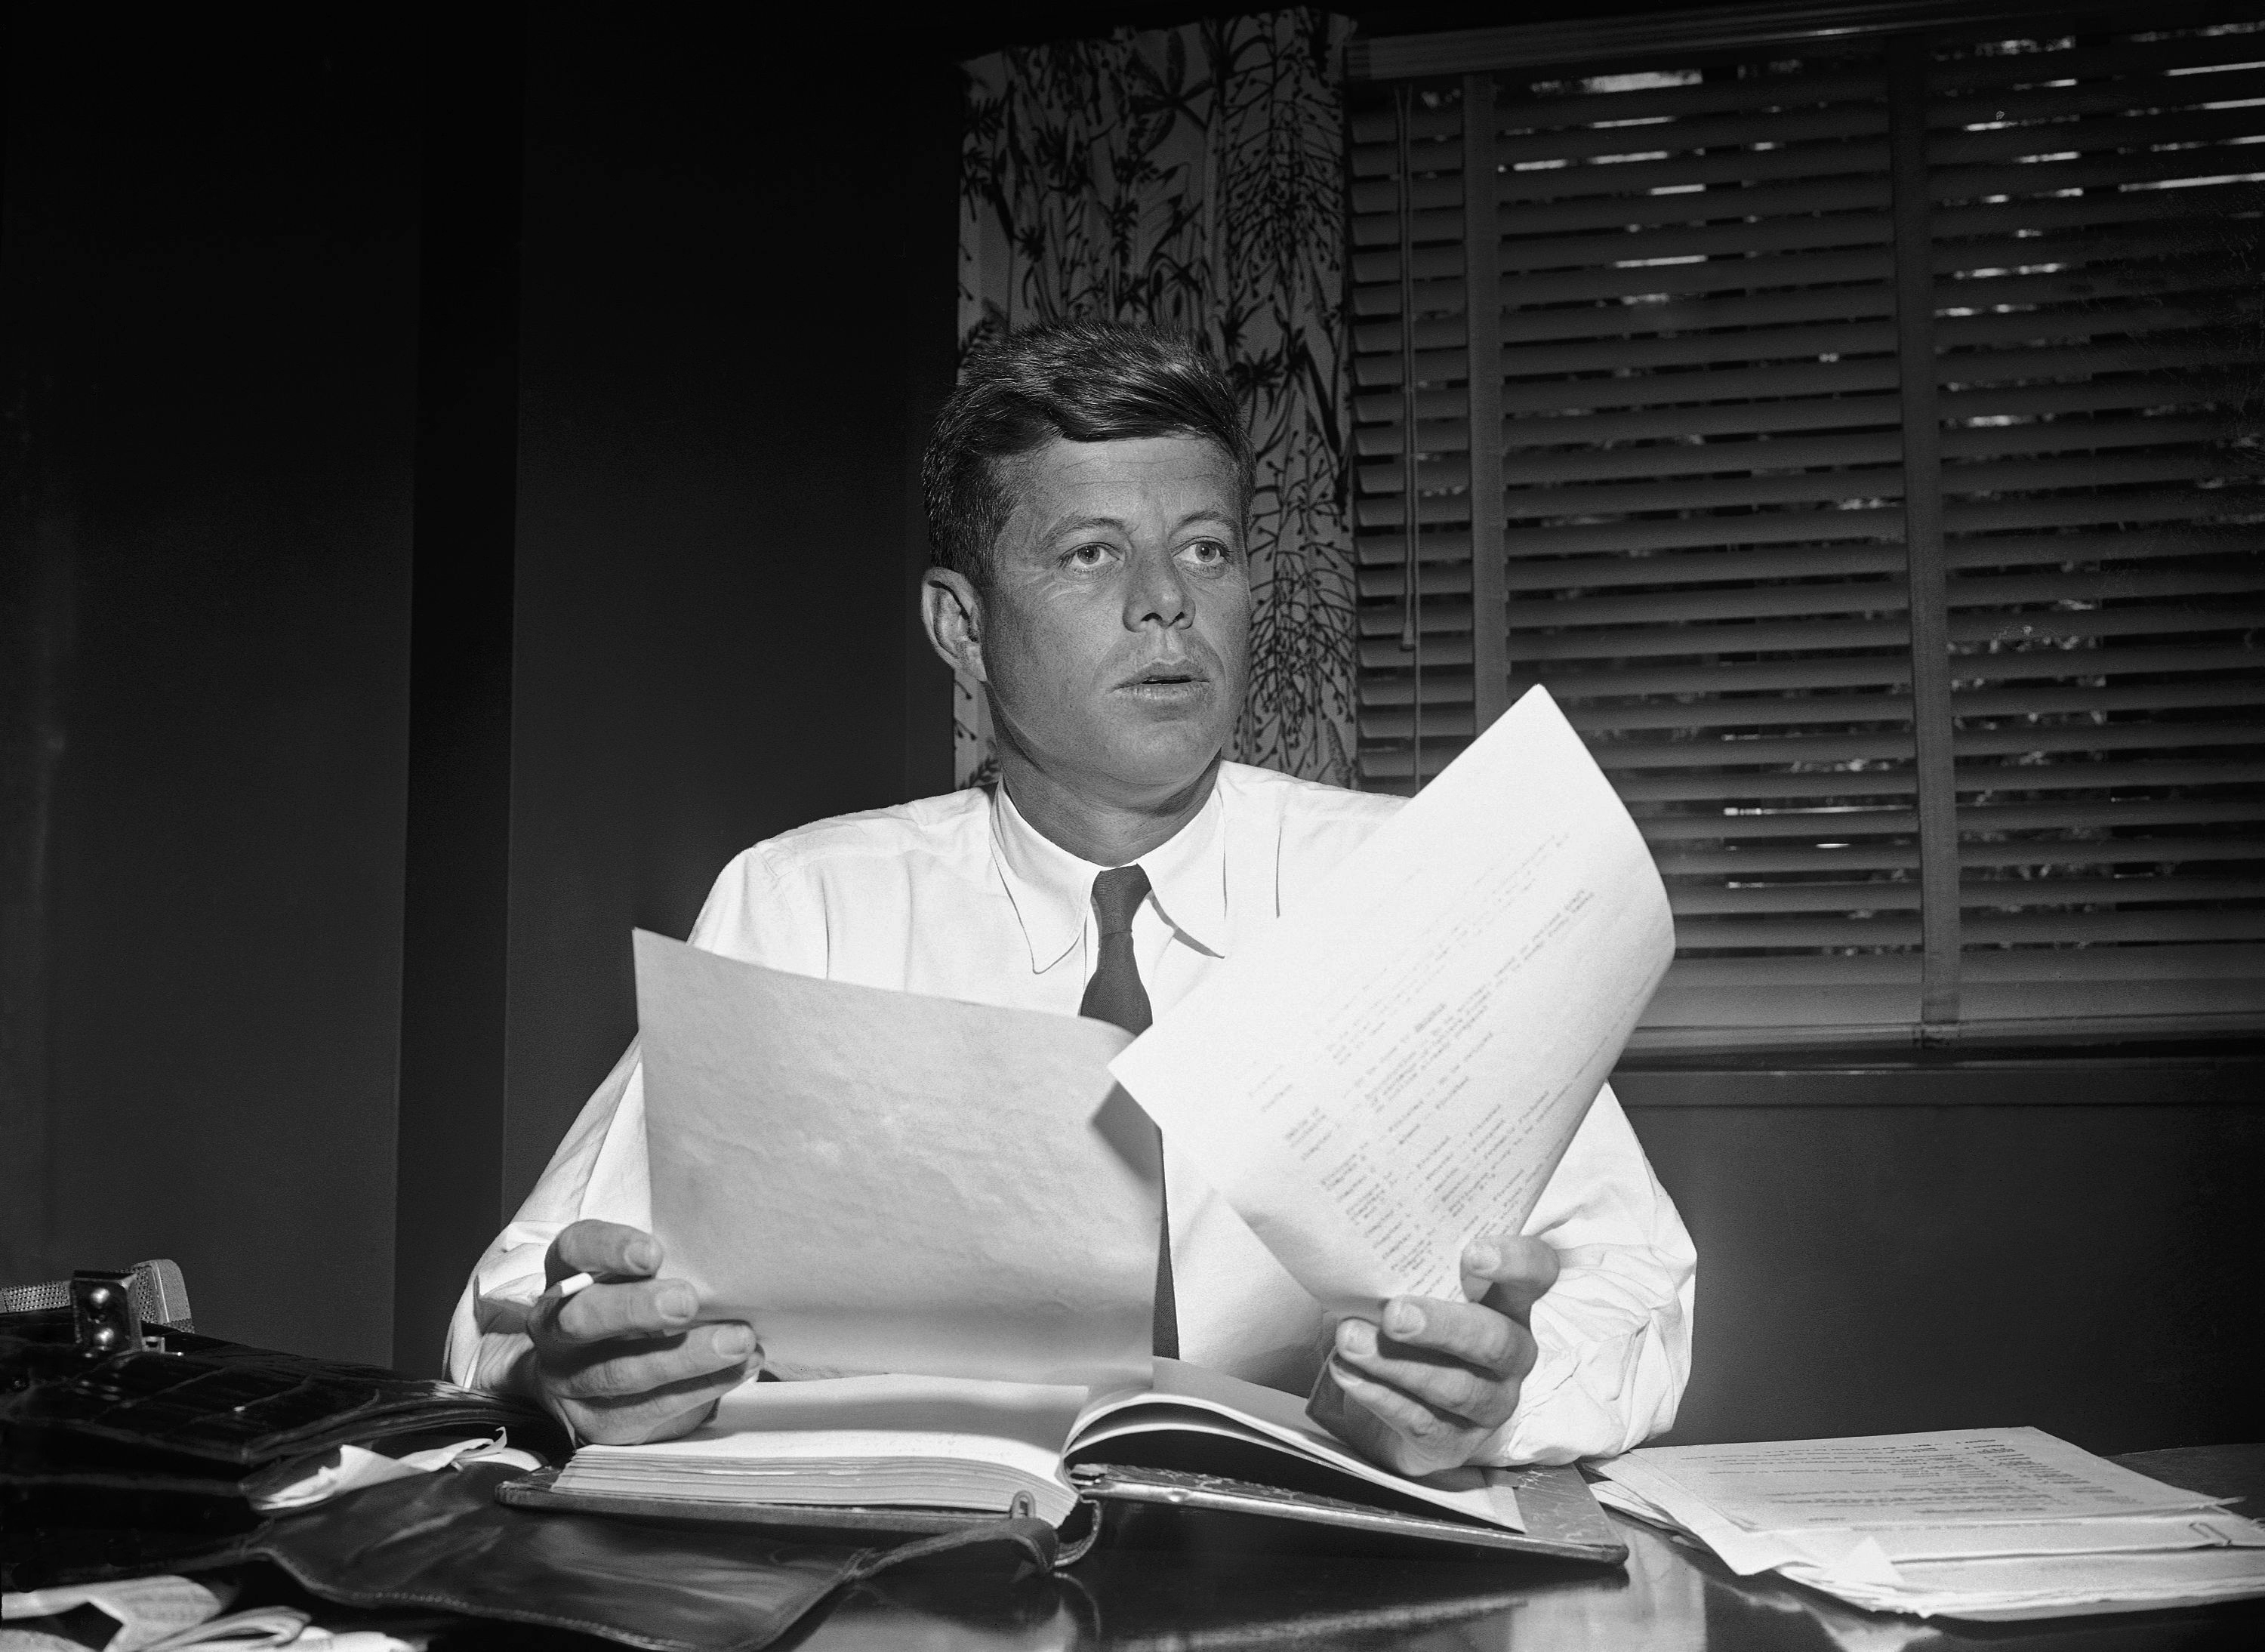 <div class='meta'><div class='origin-logo' data-origin='none'></div><span class='caption-text' data-credit='AP Photo/Bill Allen'>Sen. John Kennedy (D-Mass) as he catches up on his work in his hotel suite, May 24, 1955 after returning to the capital after an eight-month absence, following an operation.</span></div>